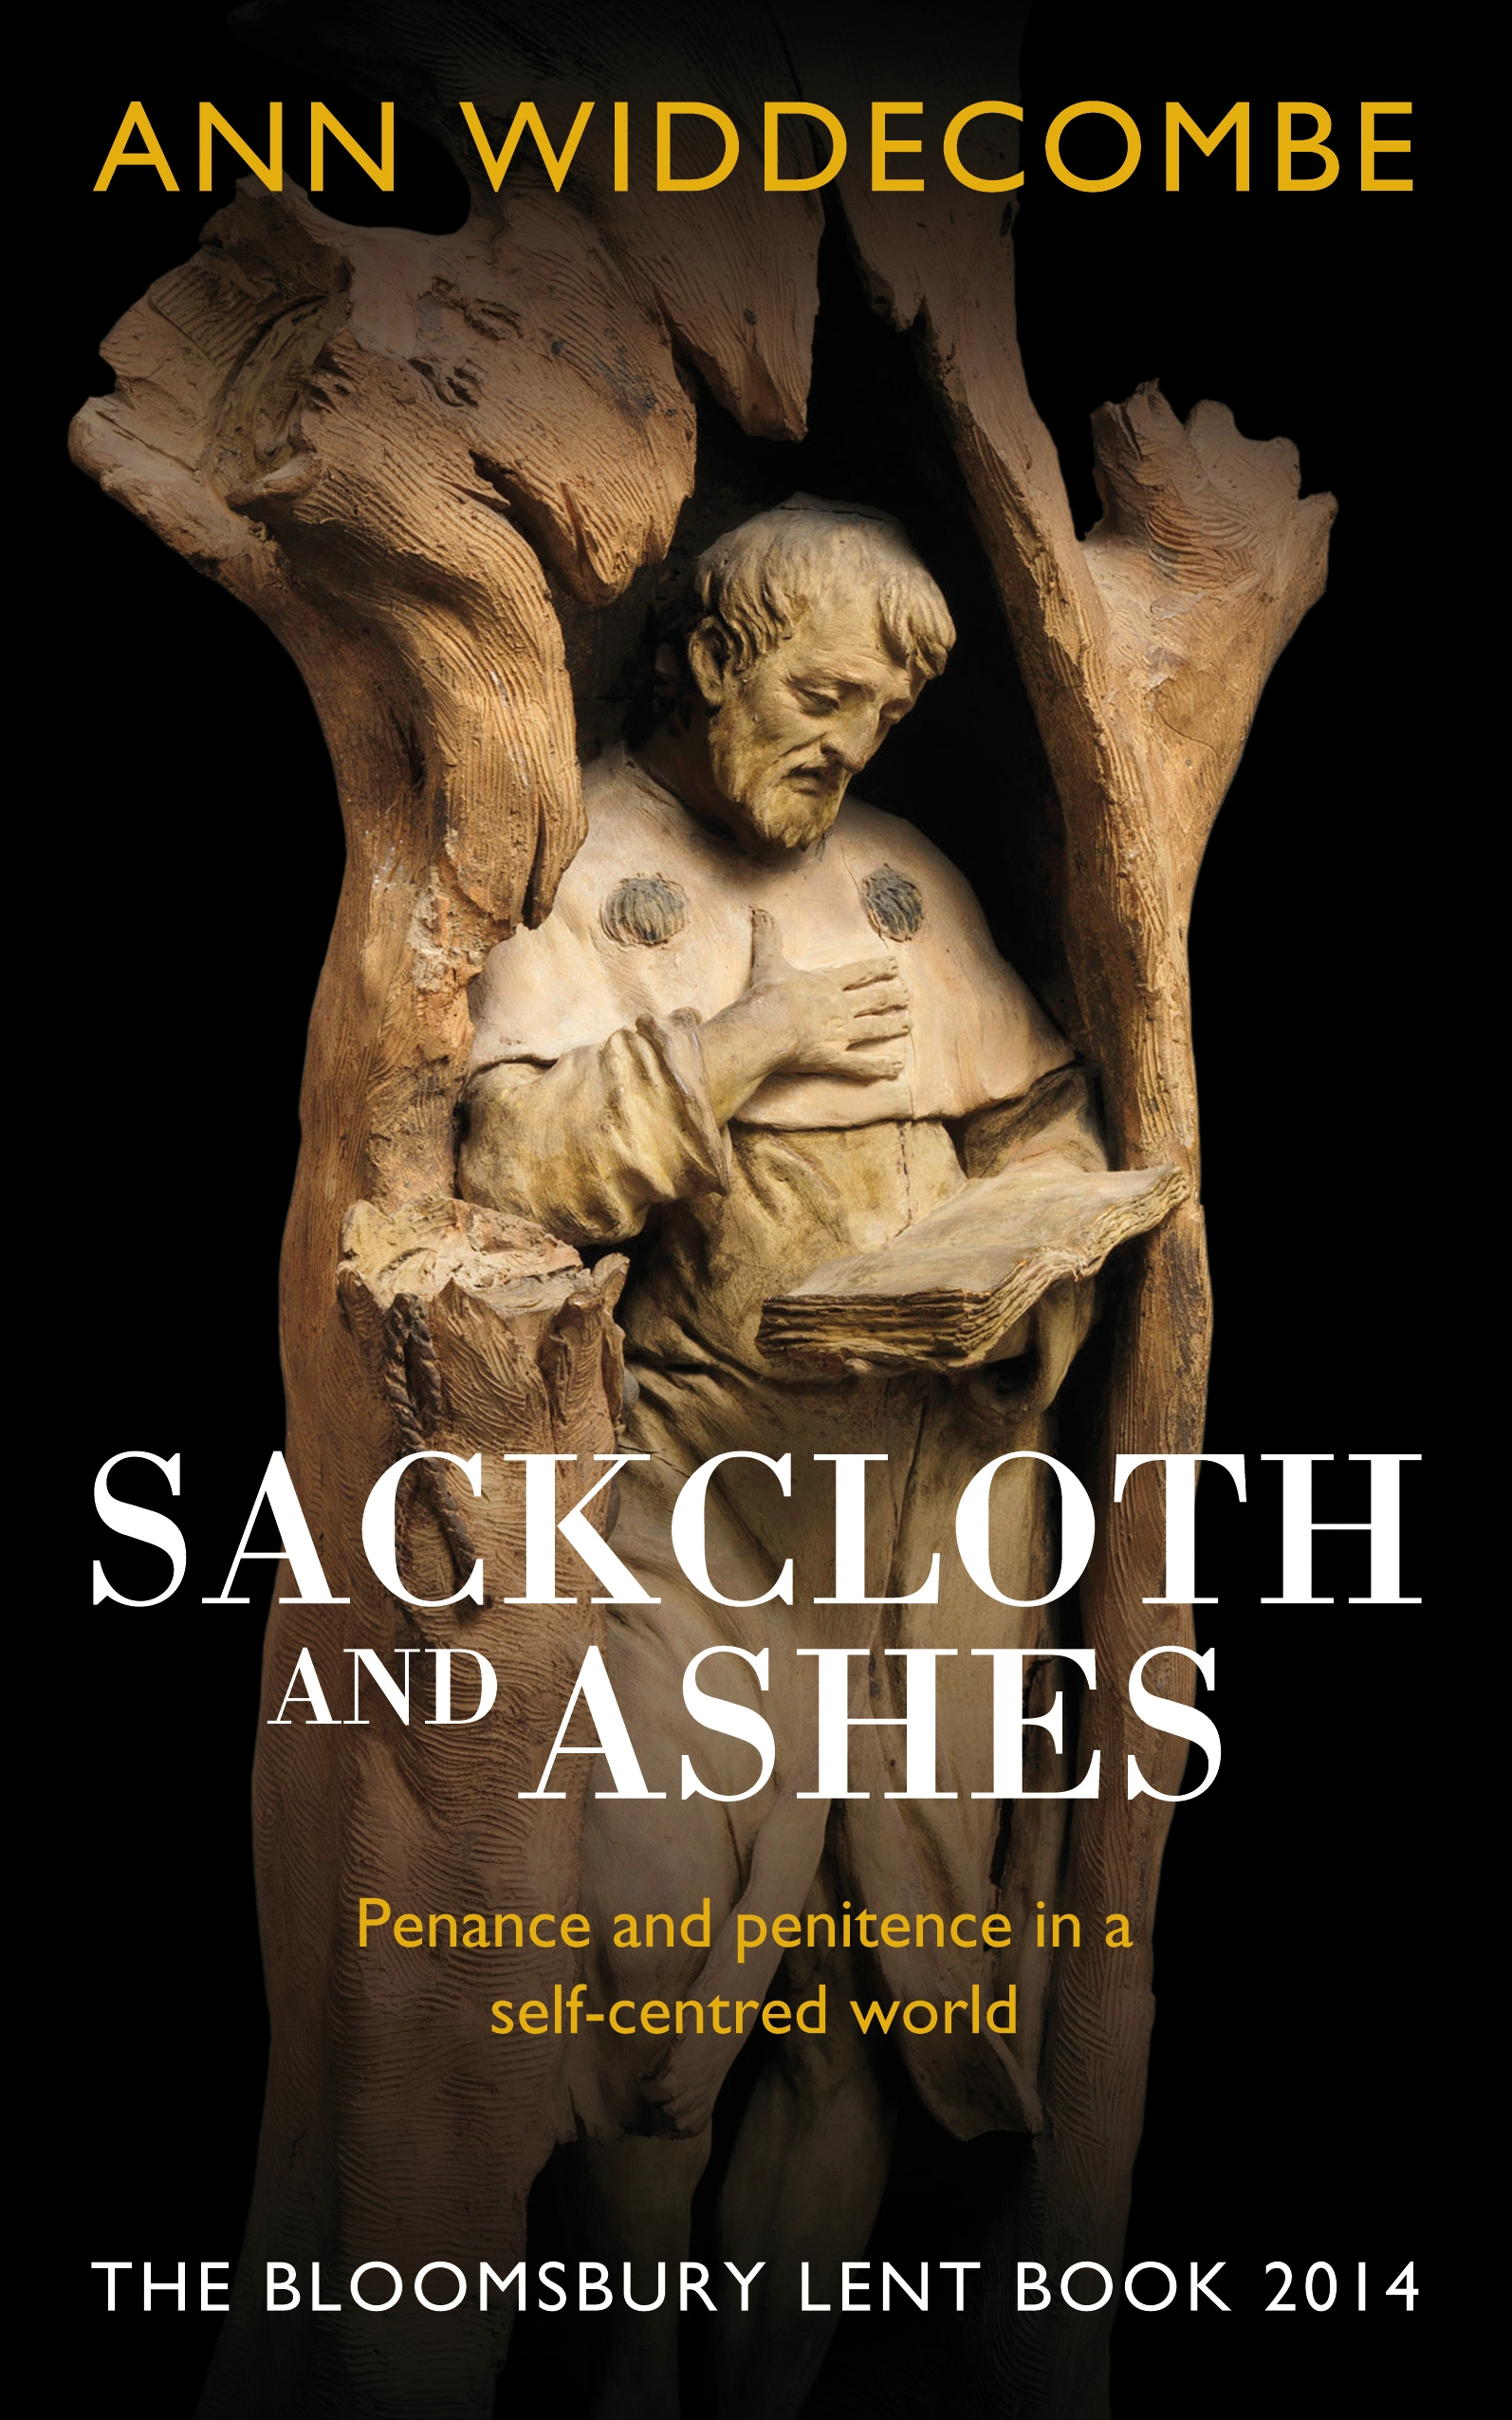 Sackcloth and Ashes The Bloomsbury Lent Book 2014